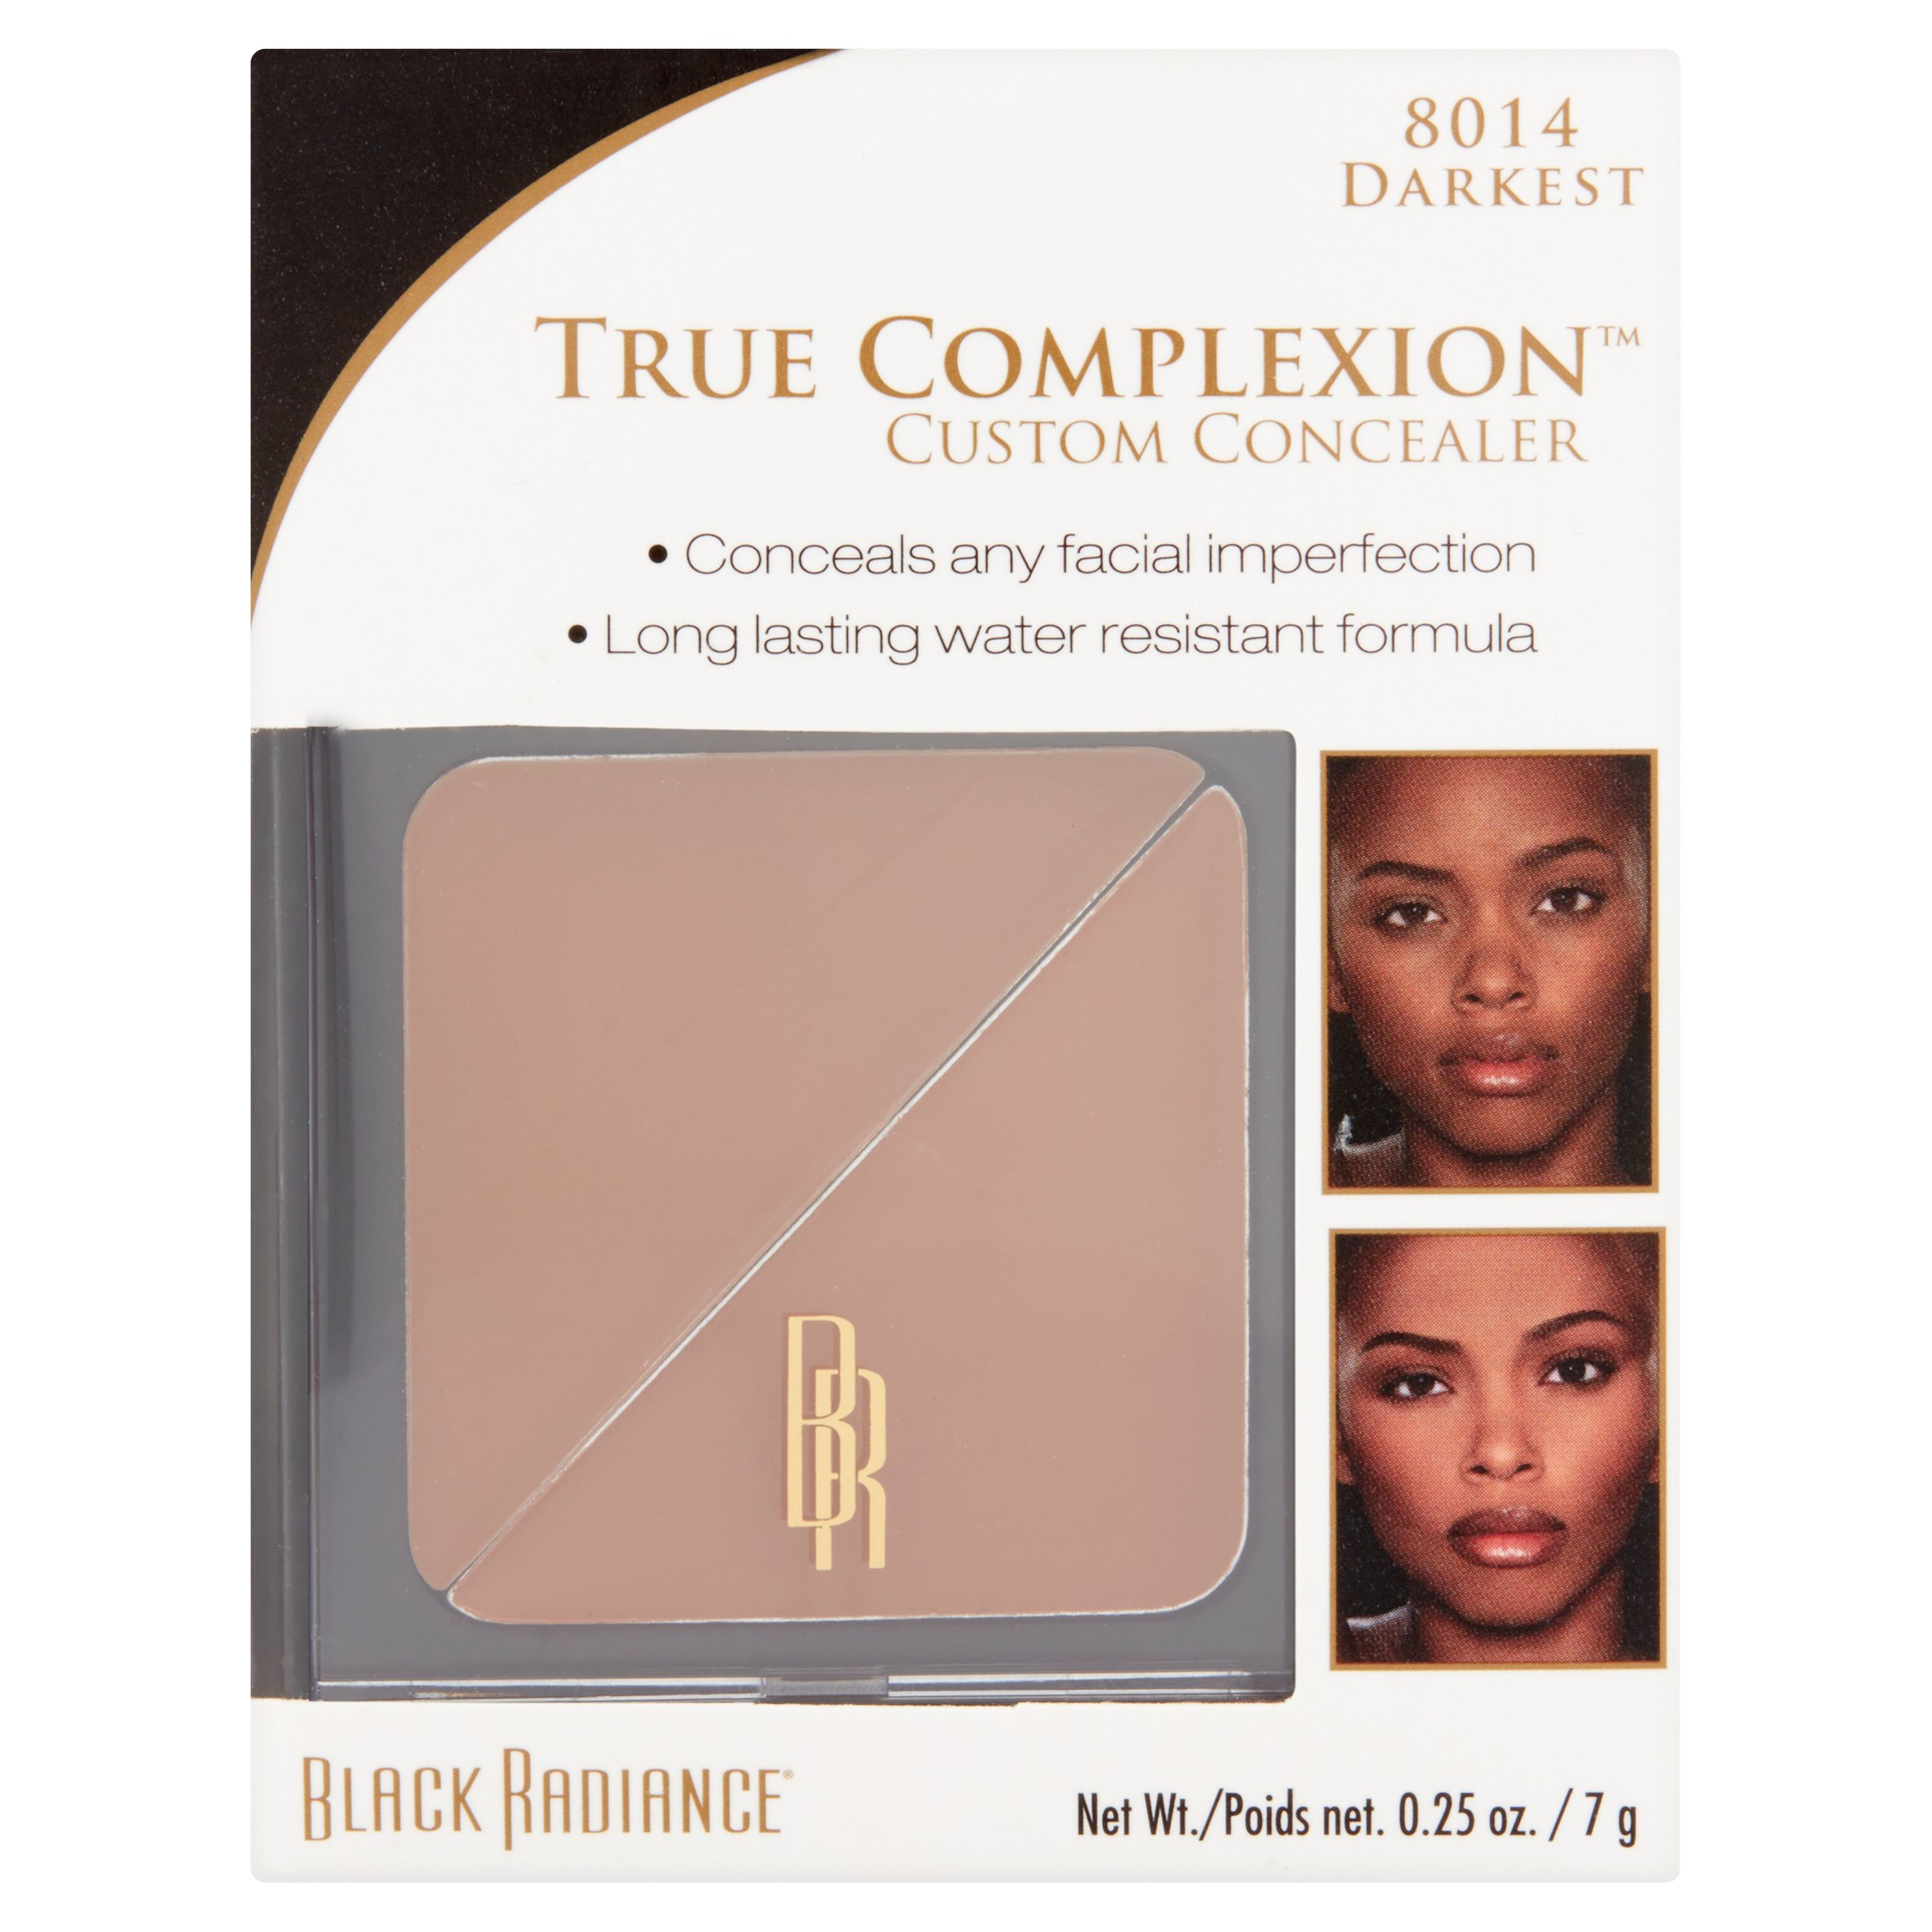 Black Radiance True Complexion 8014 Darkest Walnut Custom Concealer, 0.25 oz